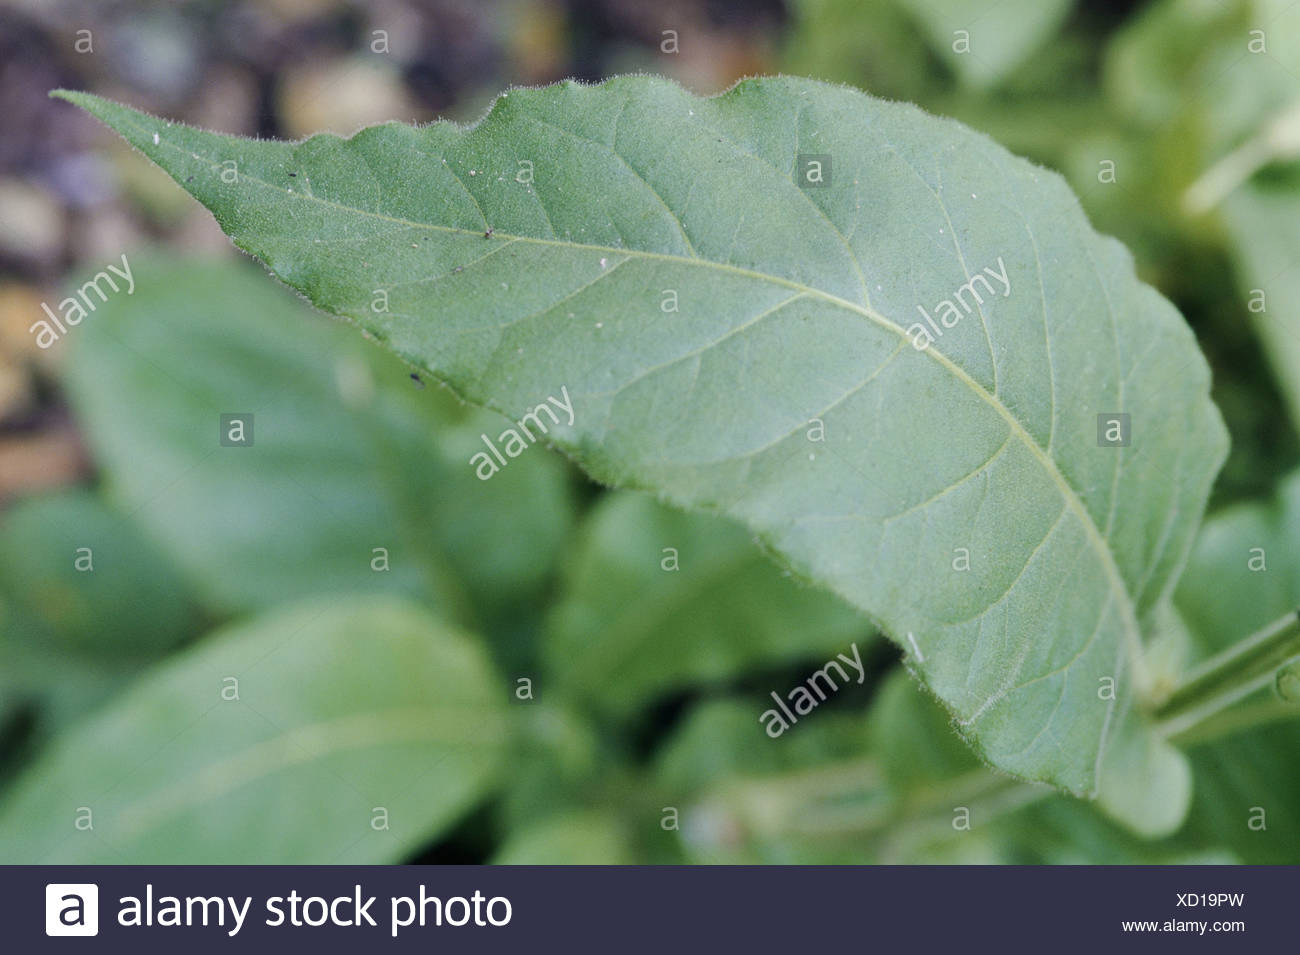 botany, Tobacco, (Nicotiana), Nicotiana tabacum, (Nicotiana tabacum), leaves, , Additional-Rights-Clearance-Info-Not-Available - Stock Image